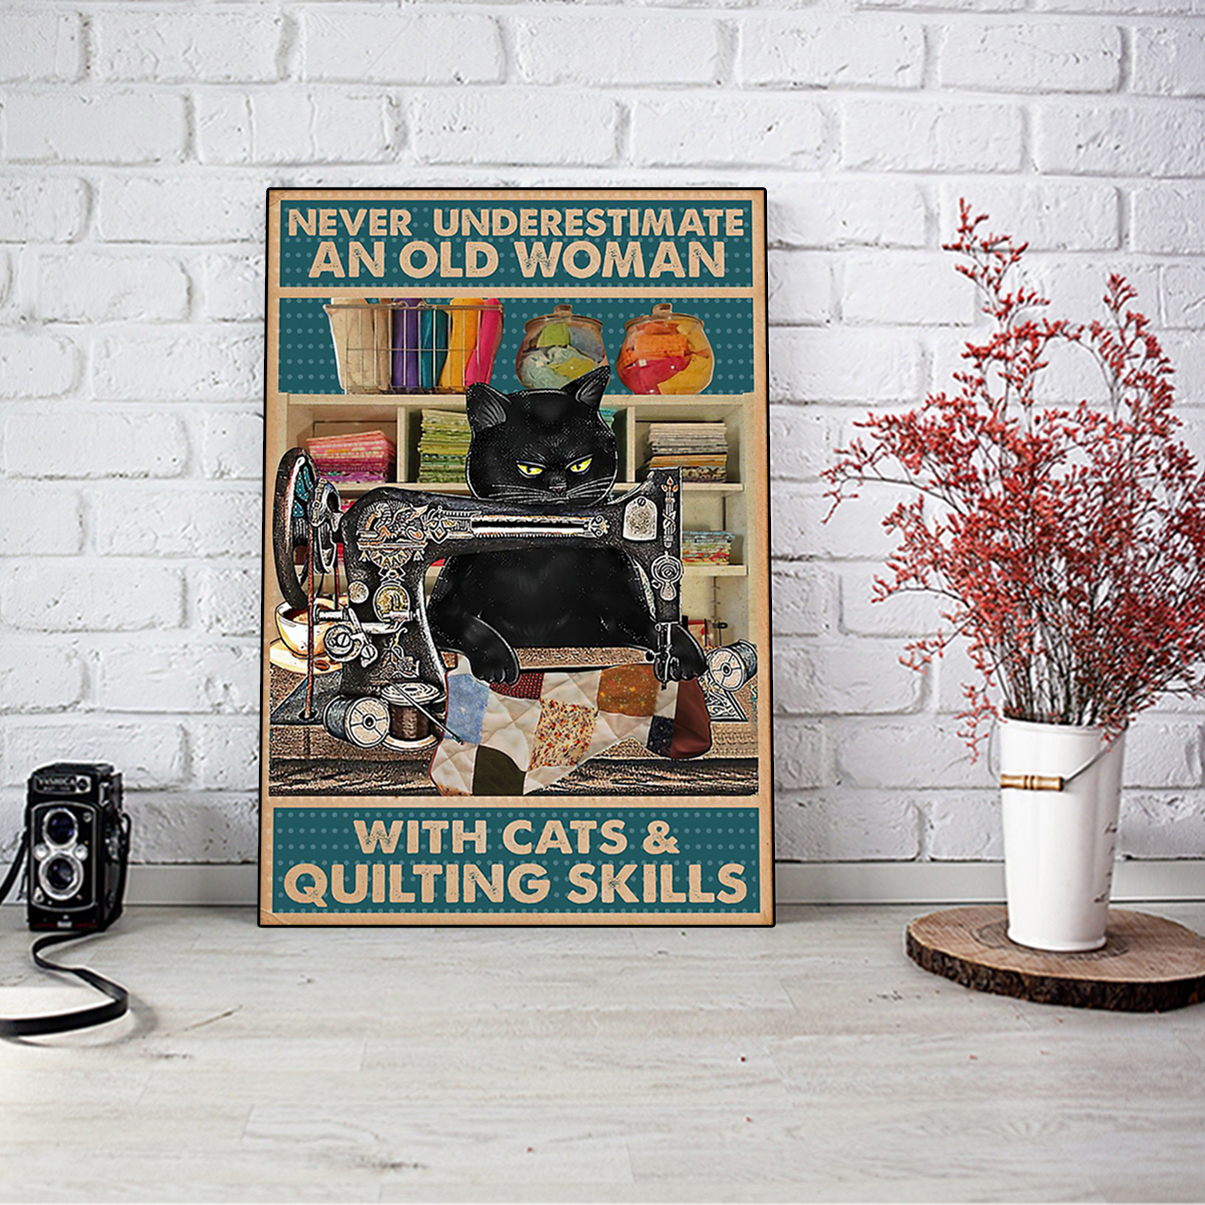 Never underestimate an old woman with cats and quilting skills poster A3